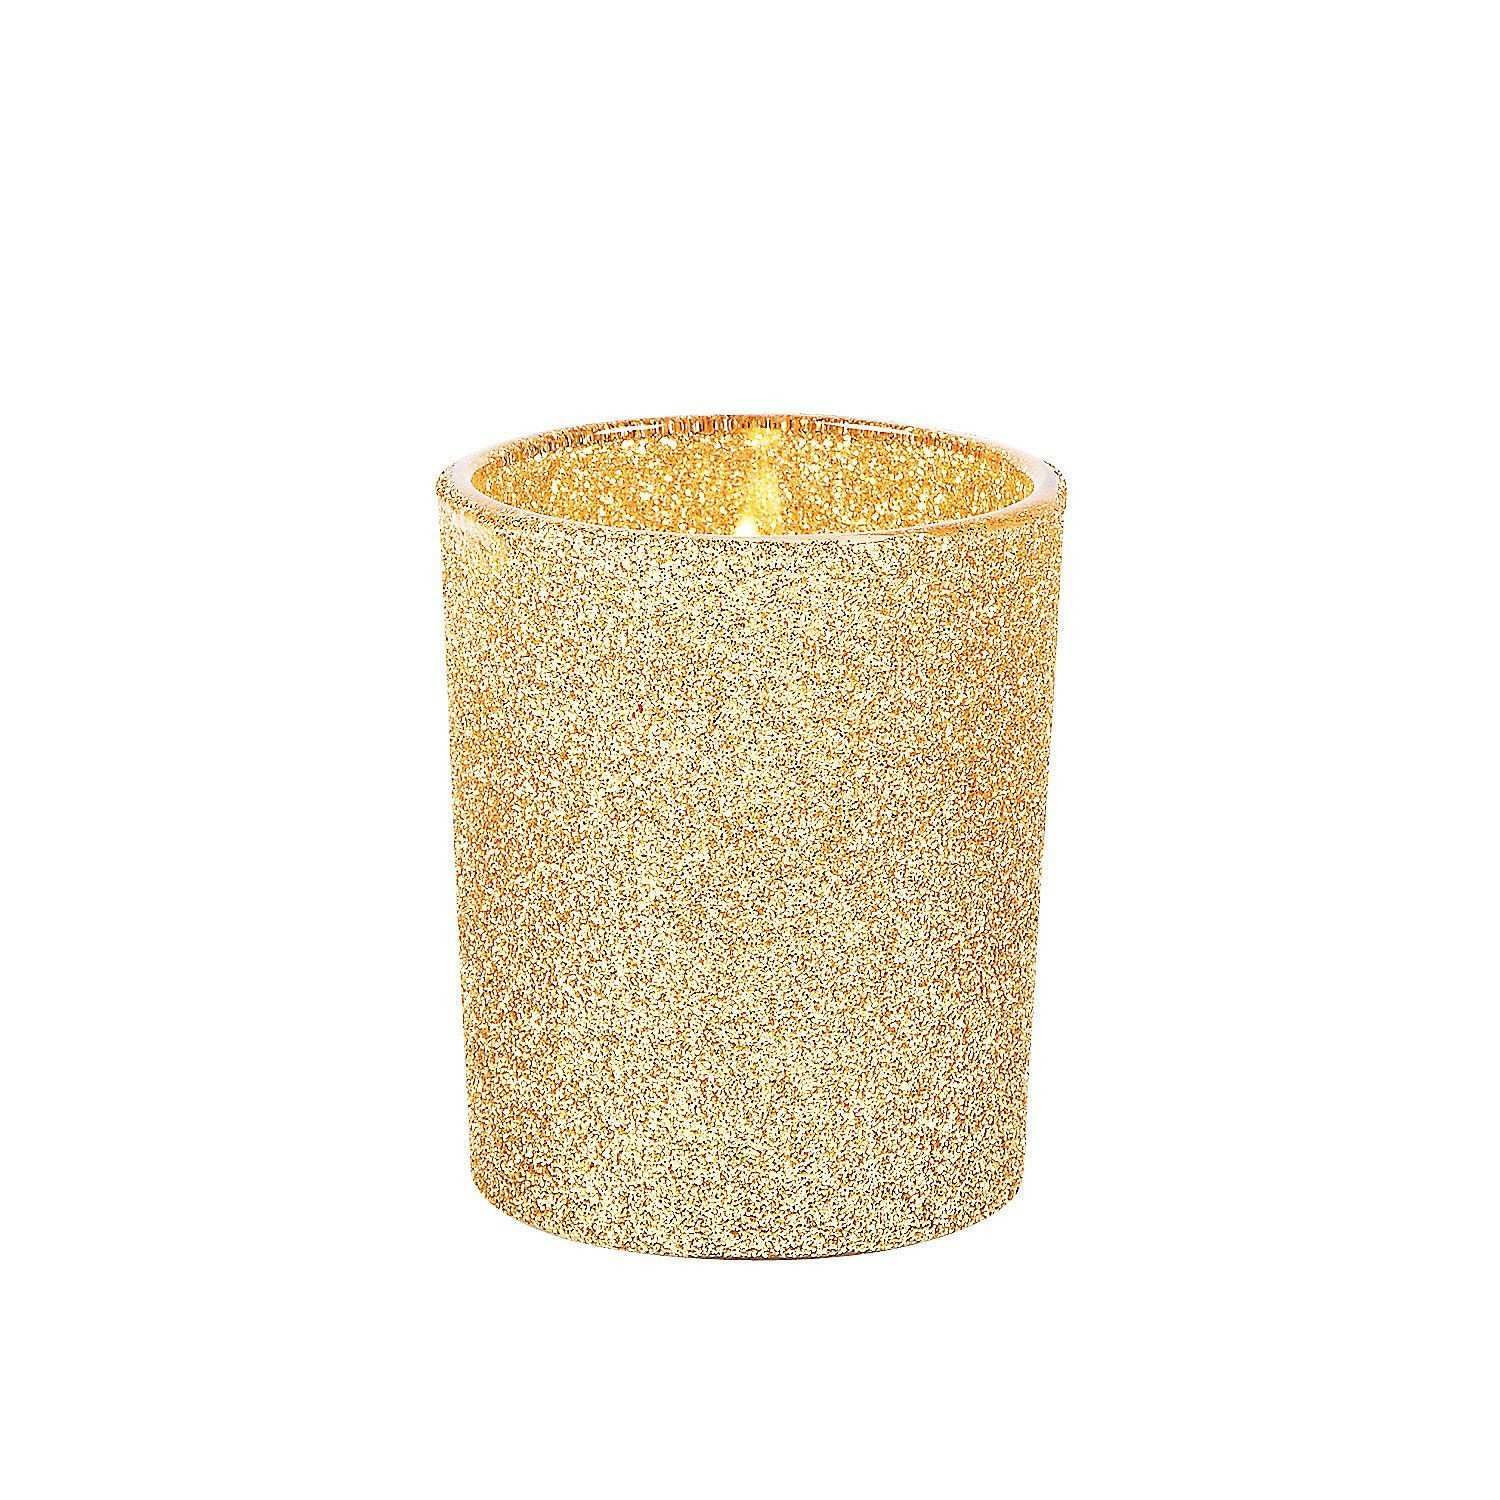 diy gold mercury glass vases of 34 gold mercury glass vases the weekly world pertaining to inspiration gold votive candles with gold glitter votive holders